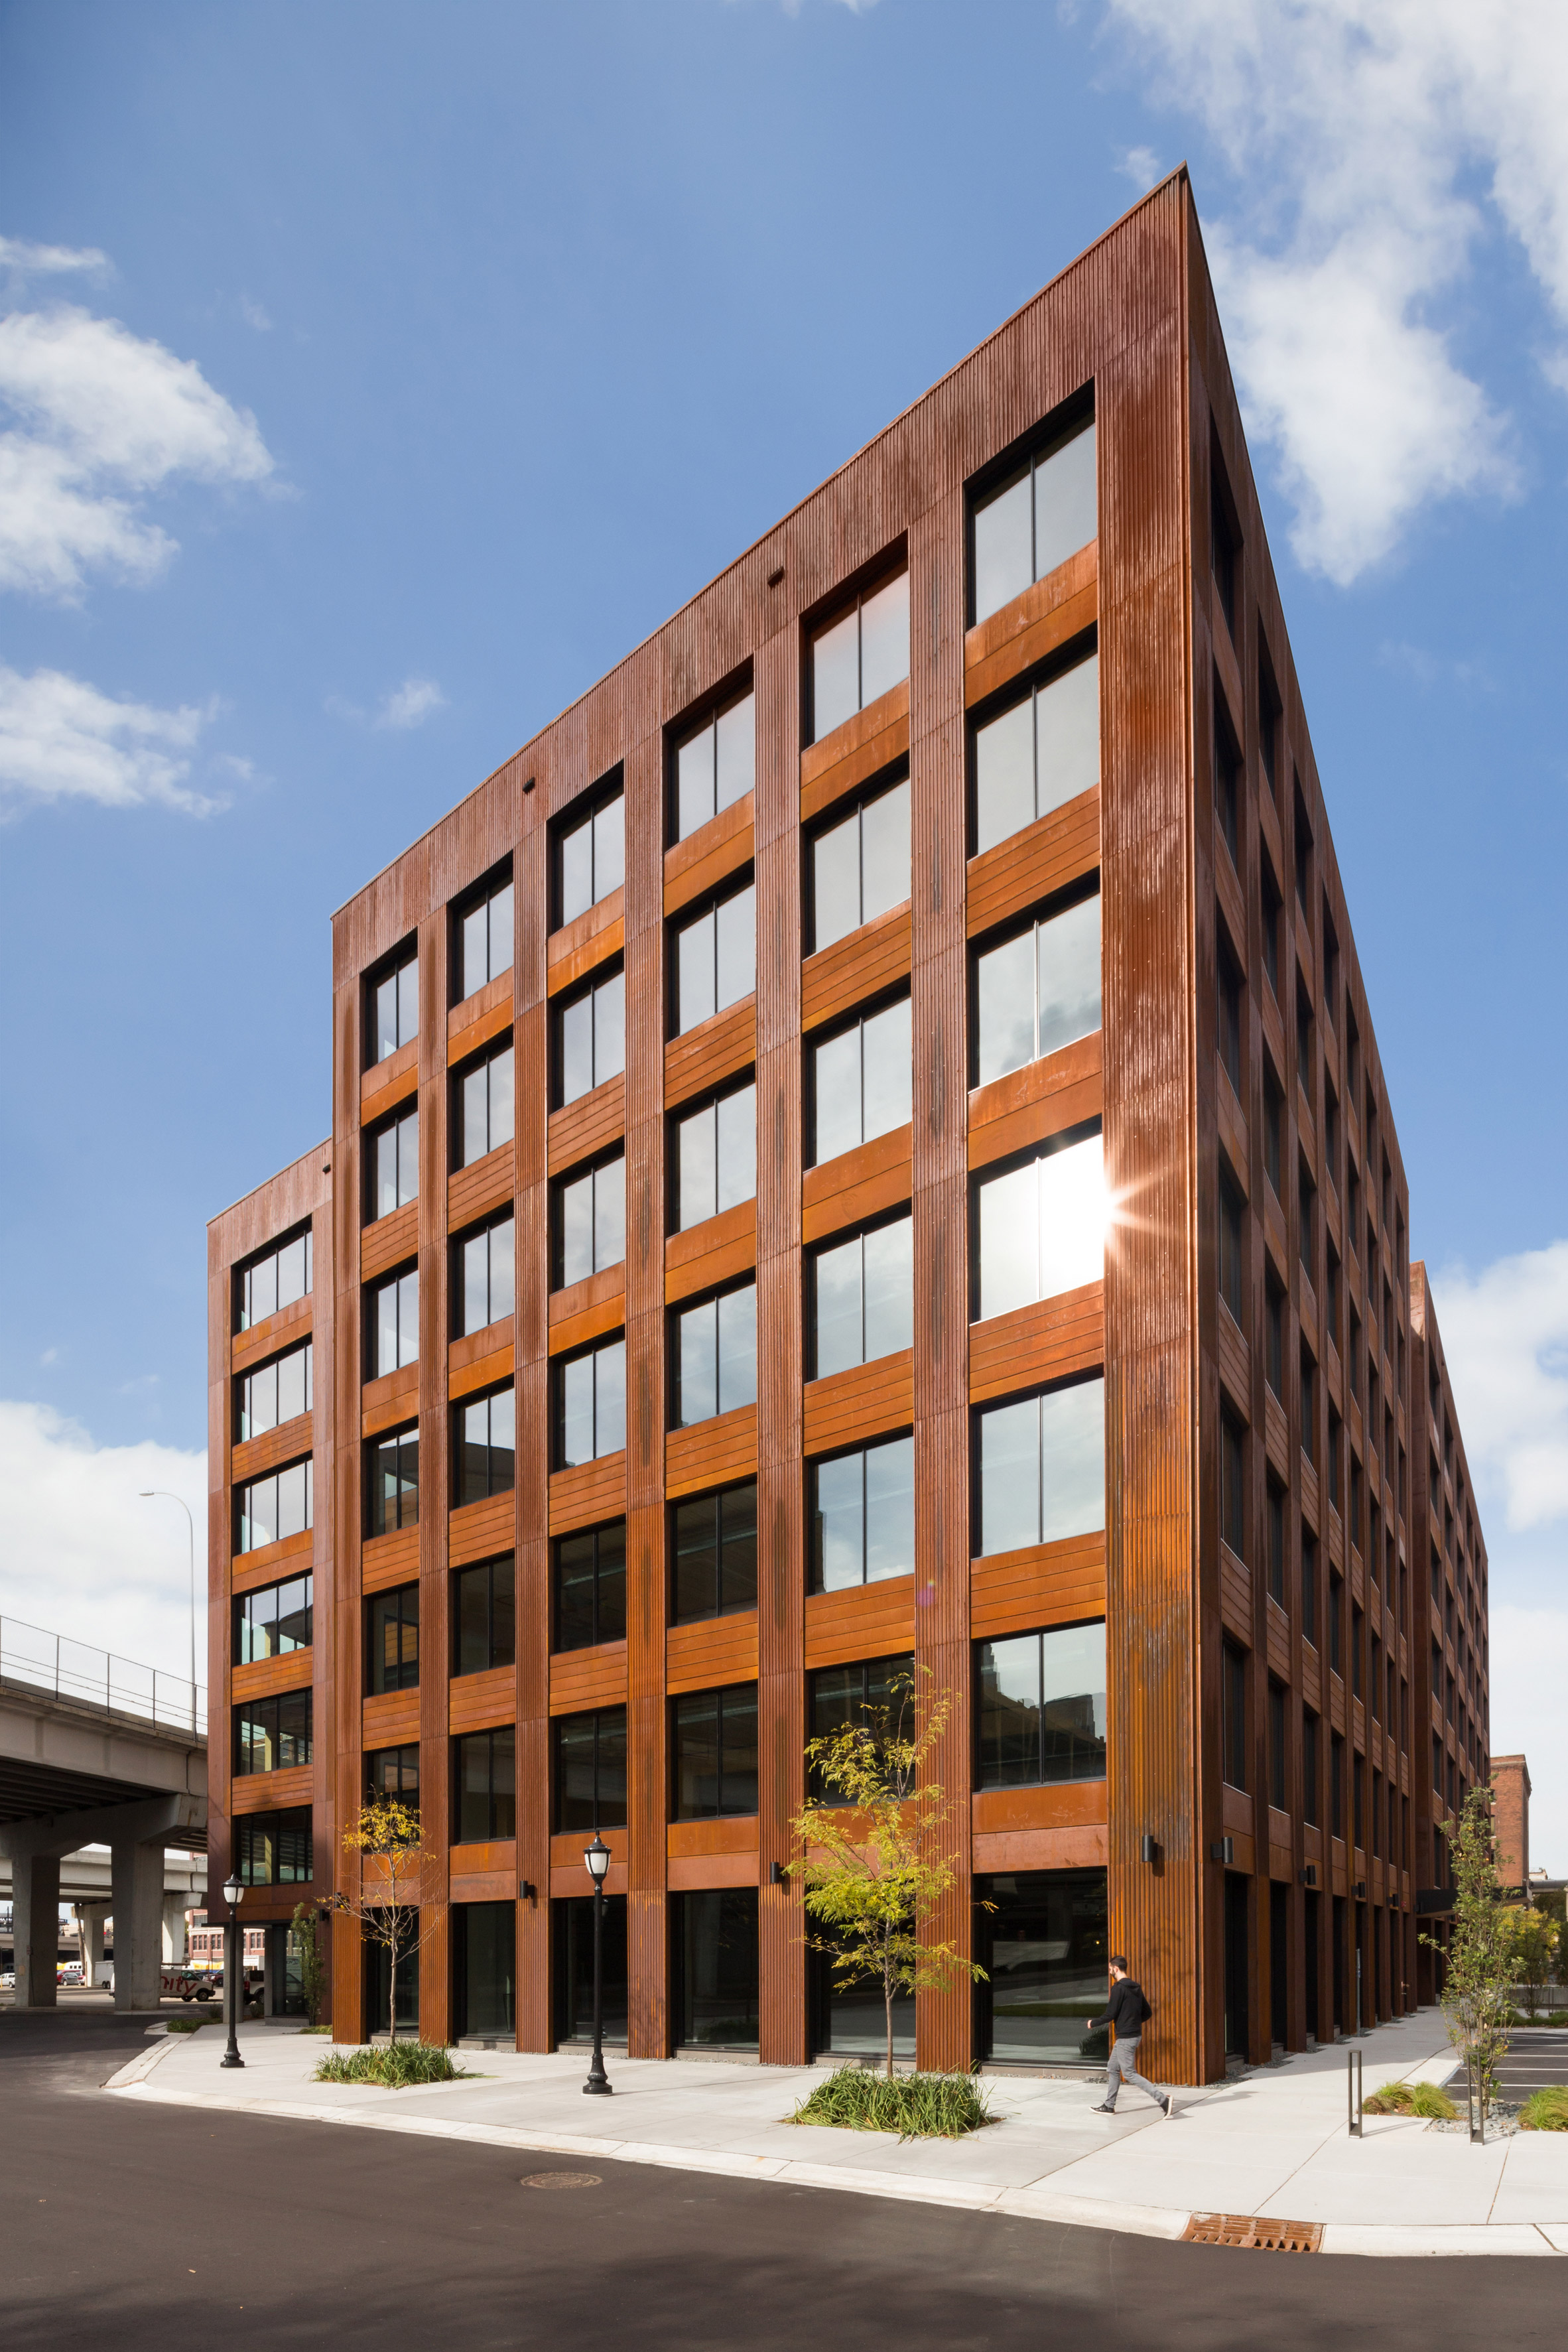 Michael Green completes largest mass-timber building in United States